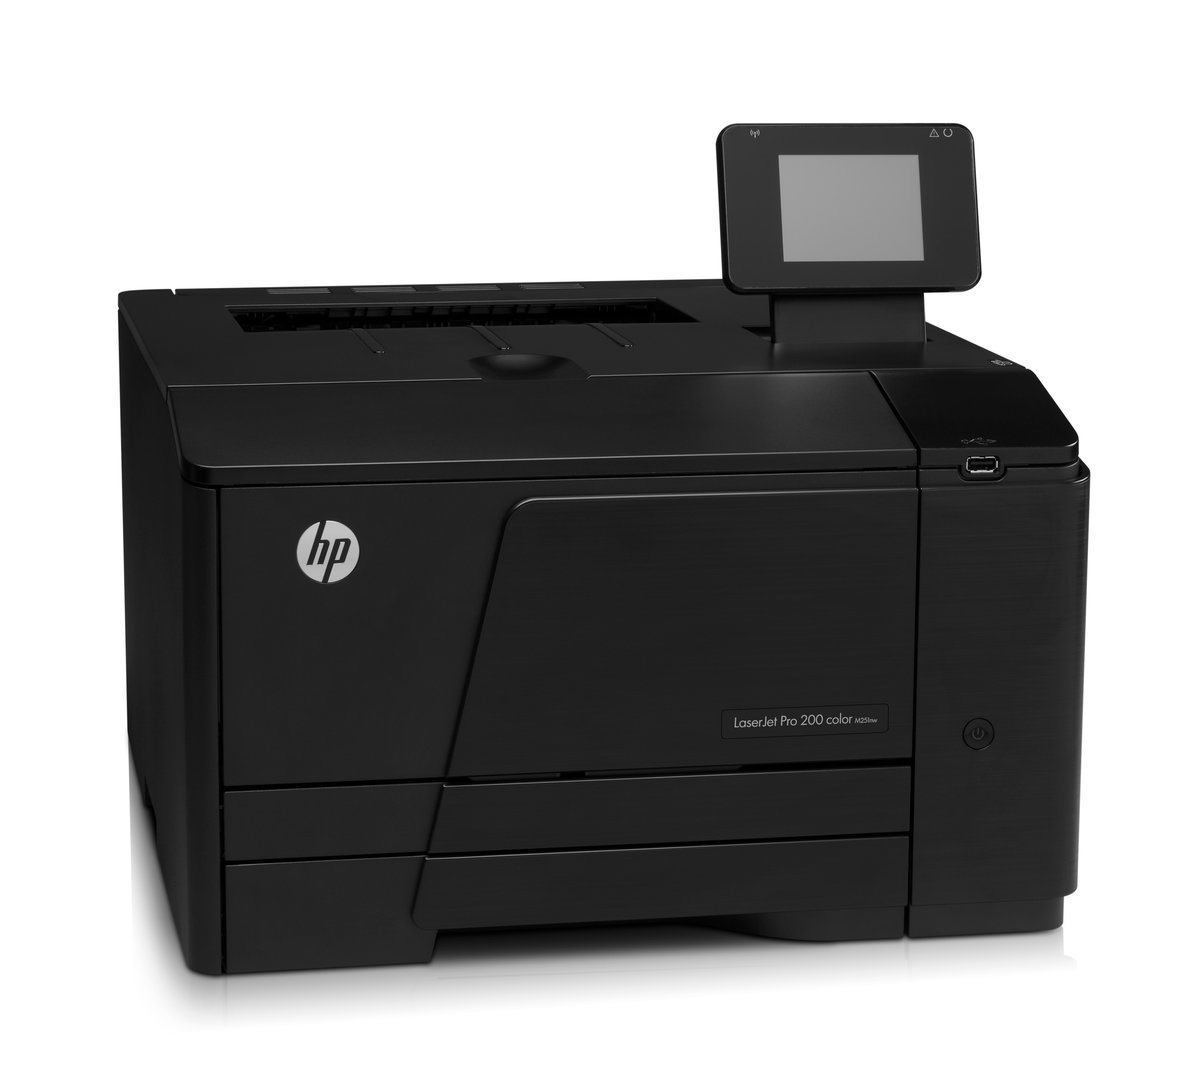 hp laserjet pro 200 wireless printer m251nw by office depot officemax rh officedepot com hp laserjet 200 color m251nw service manual HP M251nw Printer Multifunction Tray